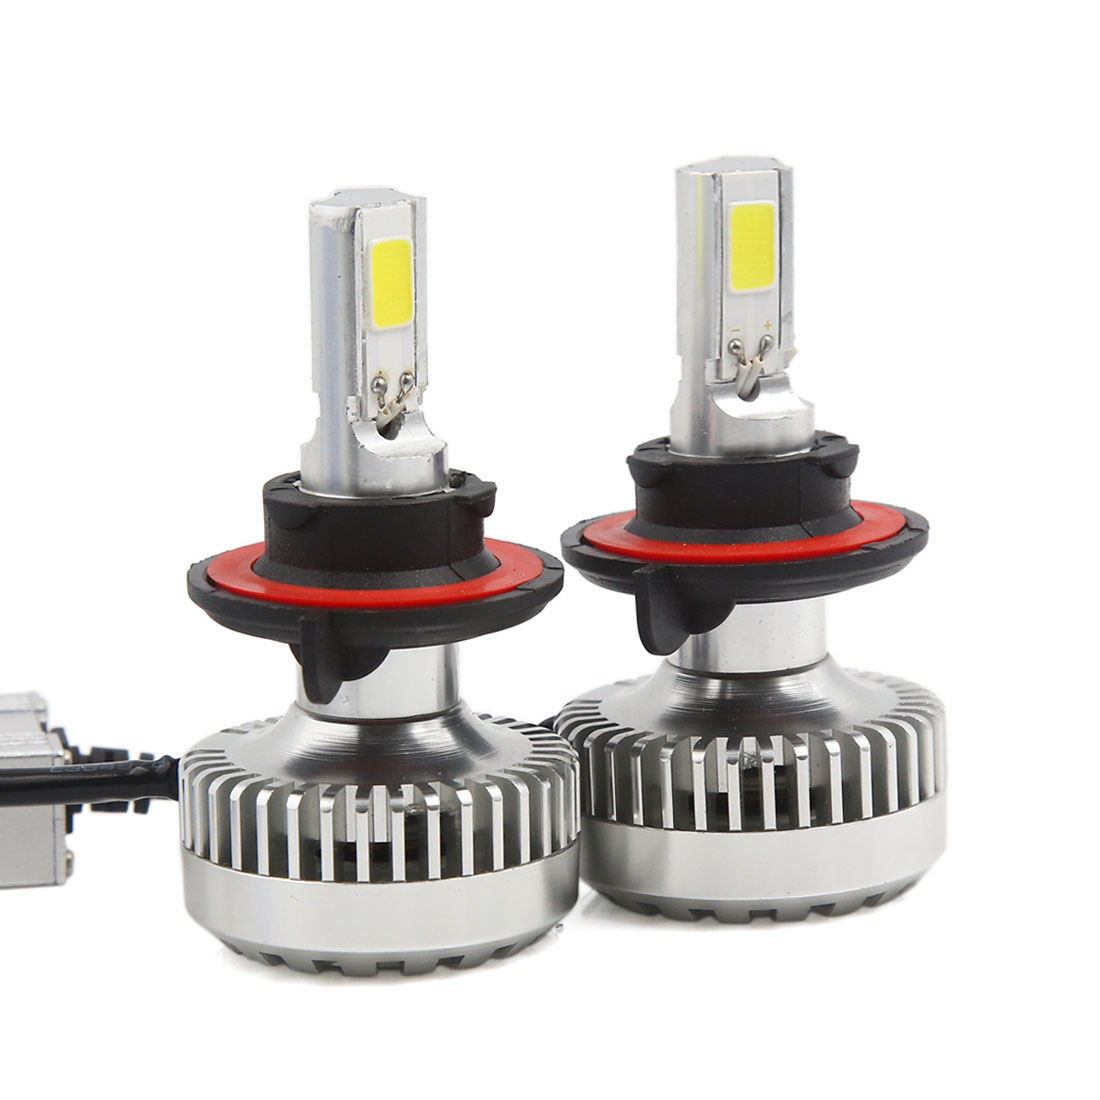 2 x 40W H13 9008 COB LED Headlight Bulbs Kit 6000K 4000LM + LED Canbus Kit (1 pair)